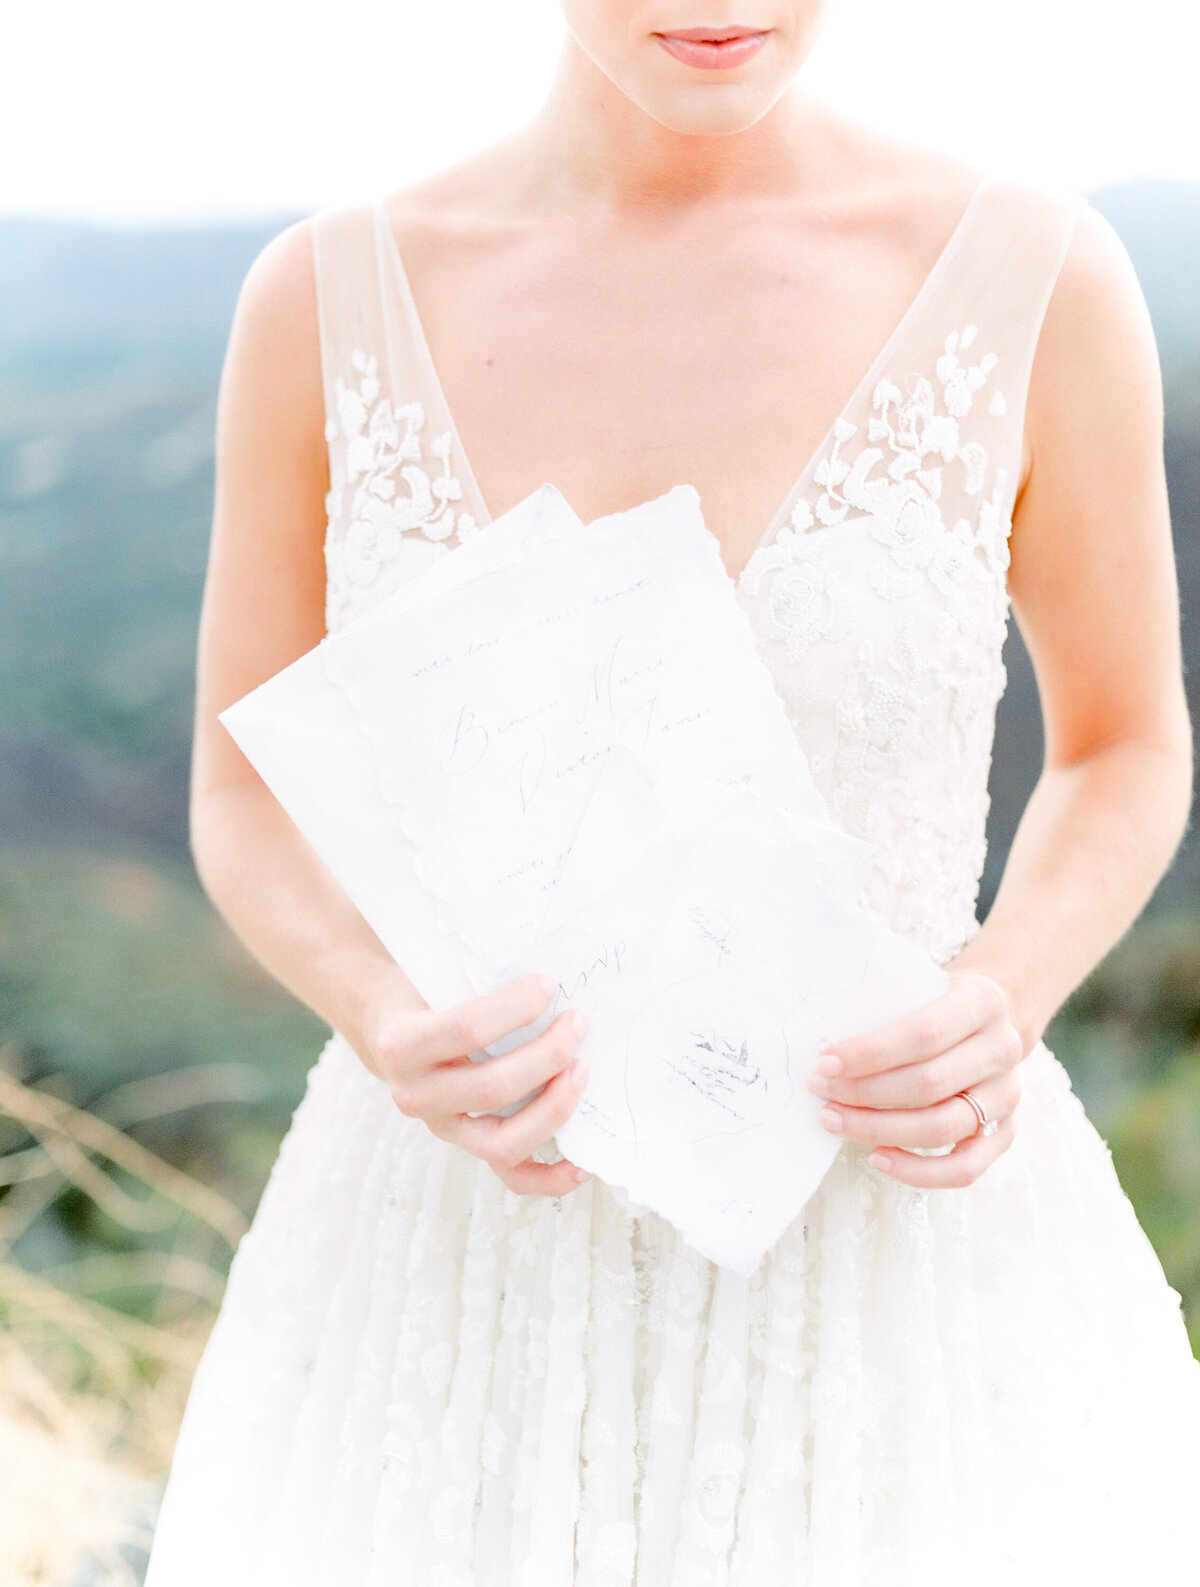 san-francisco-elopement-mountains-jessi-clare6